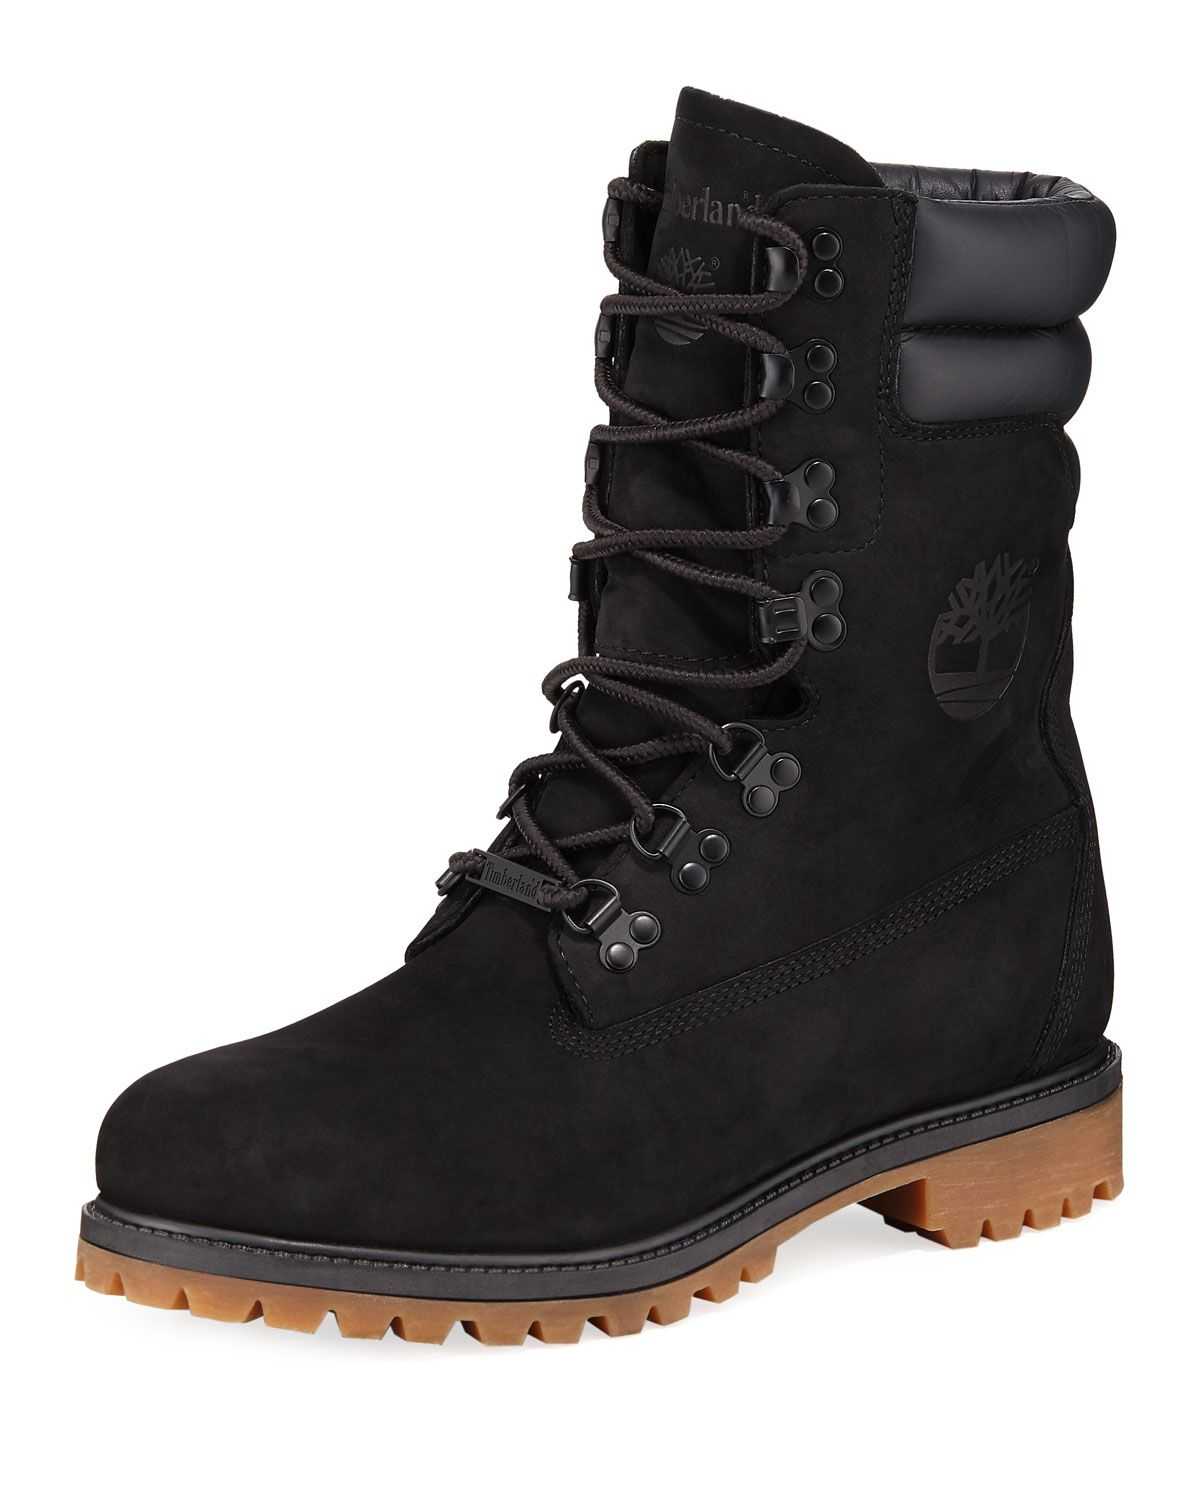 TIMBERLAND MEN'S SUPER SHEARLING LINED LEATHER HIKER BOOTS